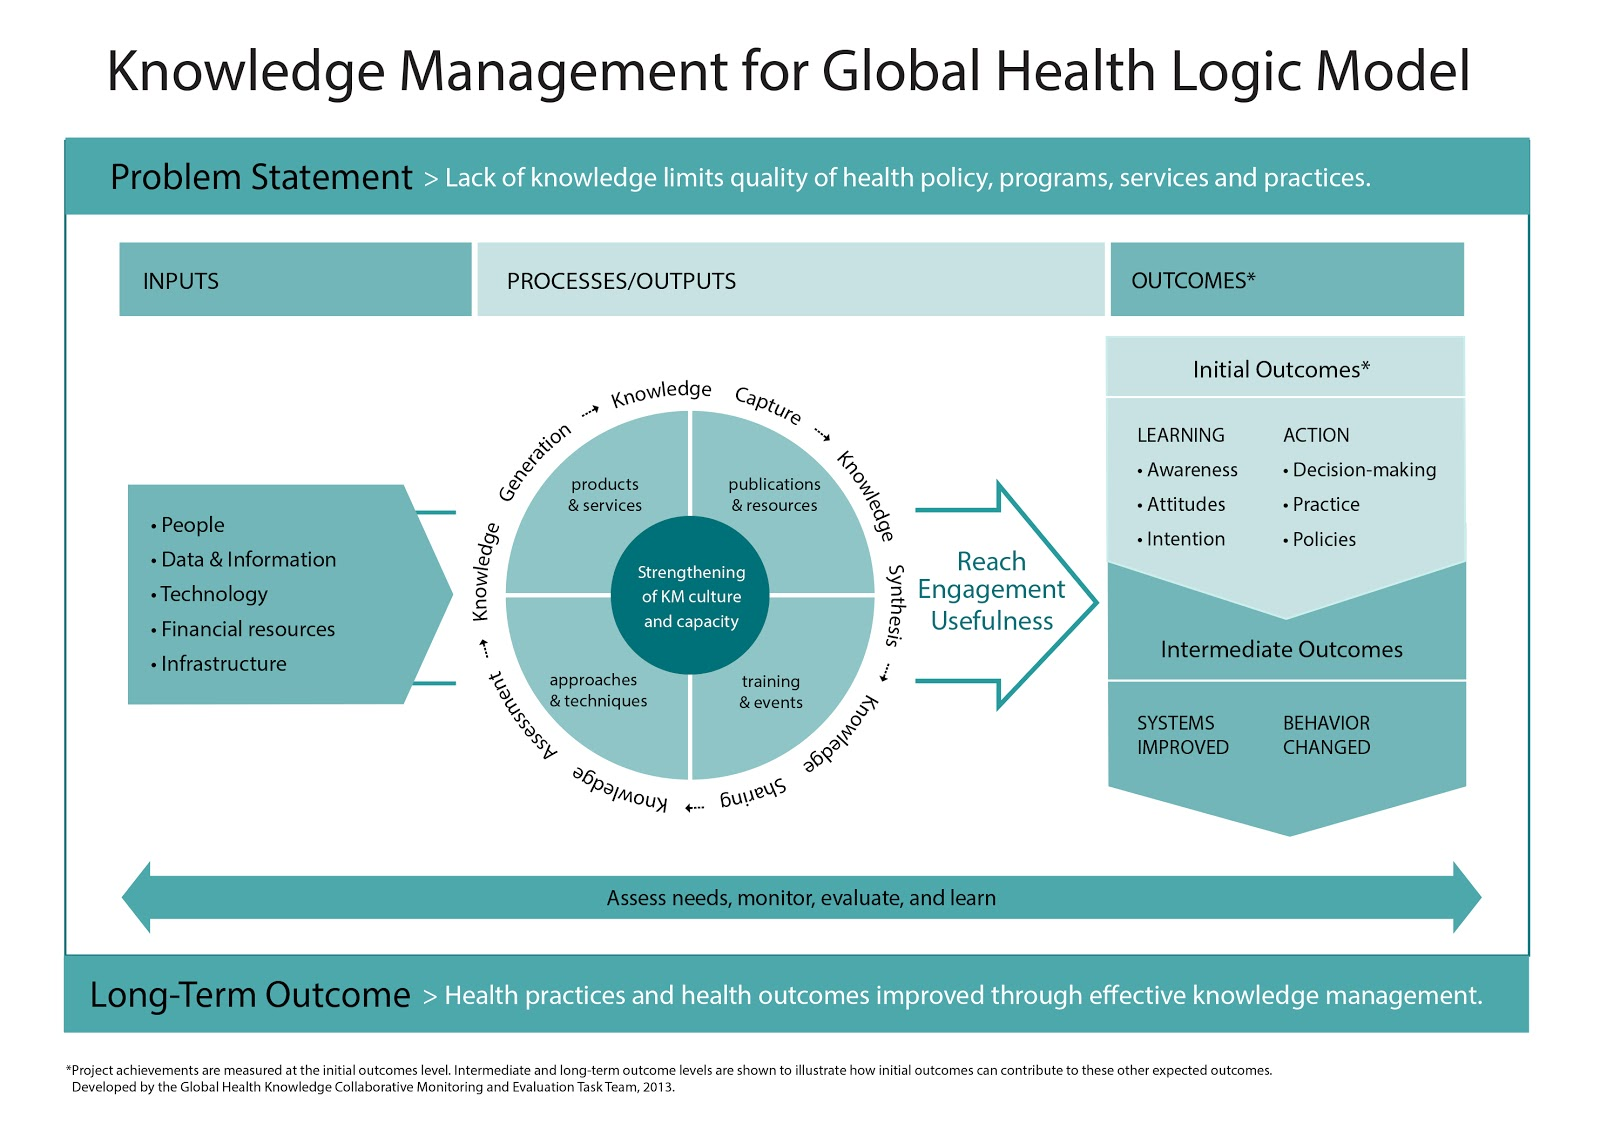 Knowledge Management for Global Health Logic Model | Knowledge ...